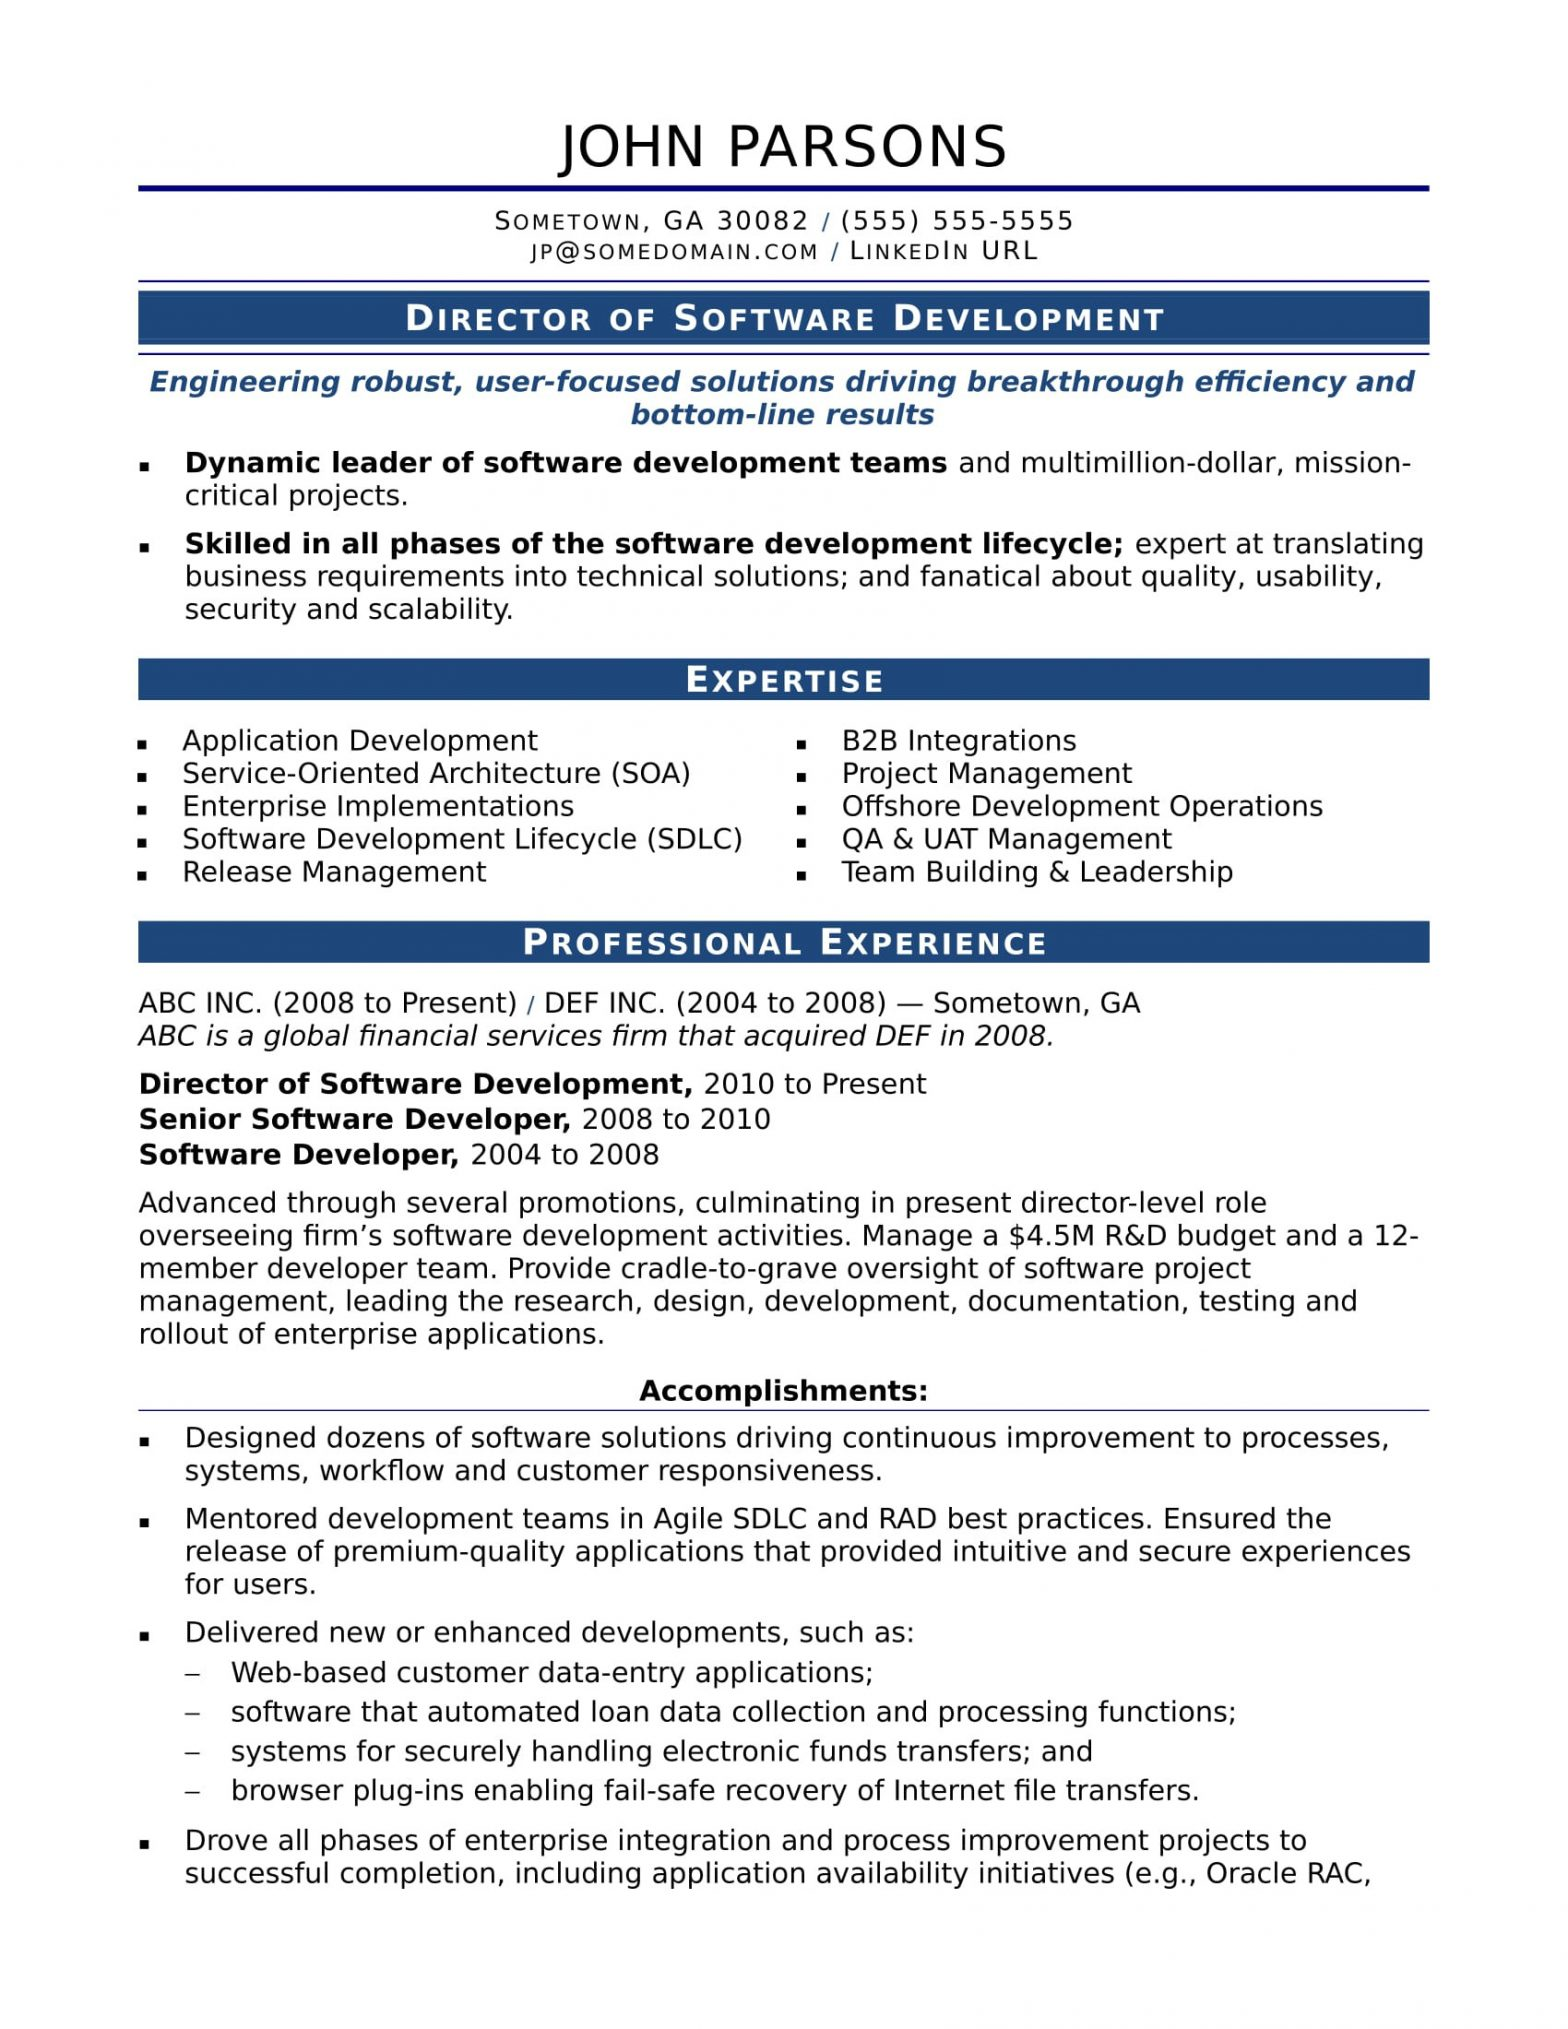 Sample Resume Of 2 Years Experience software Engineer Sample Resume for An Experienced It Developer Monster.com